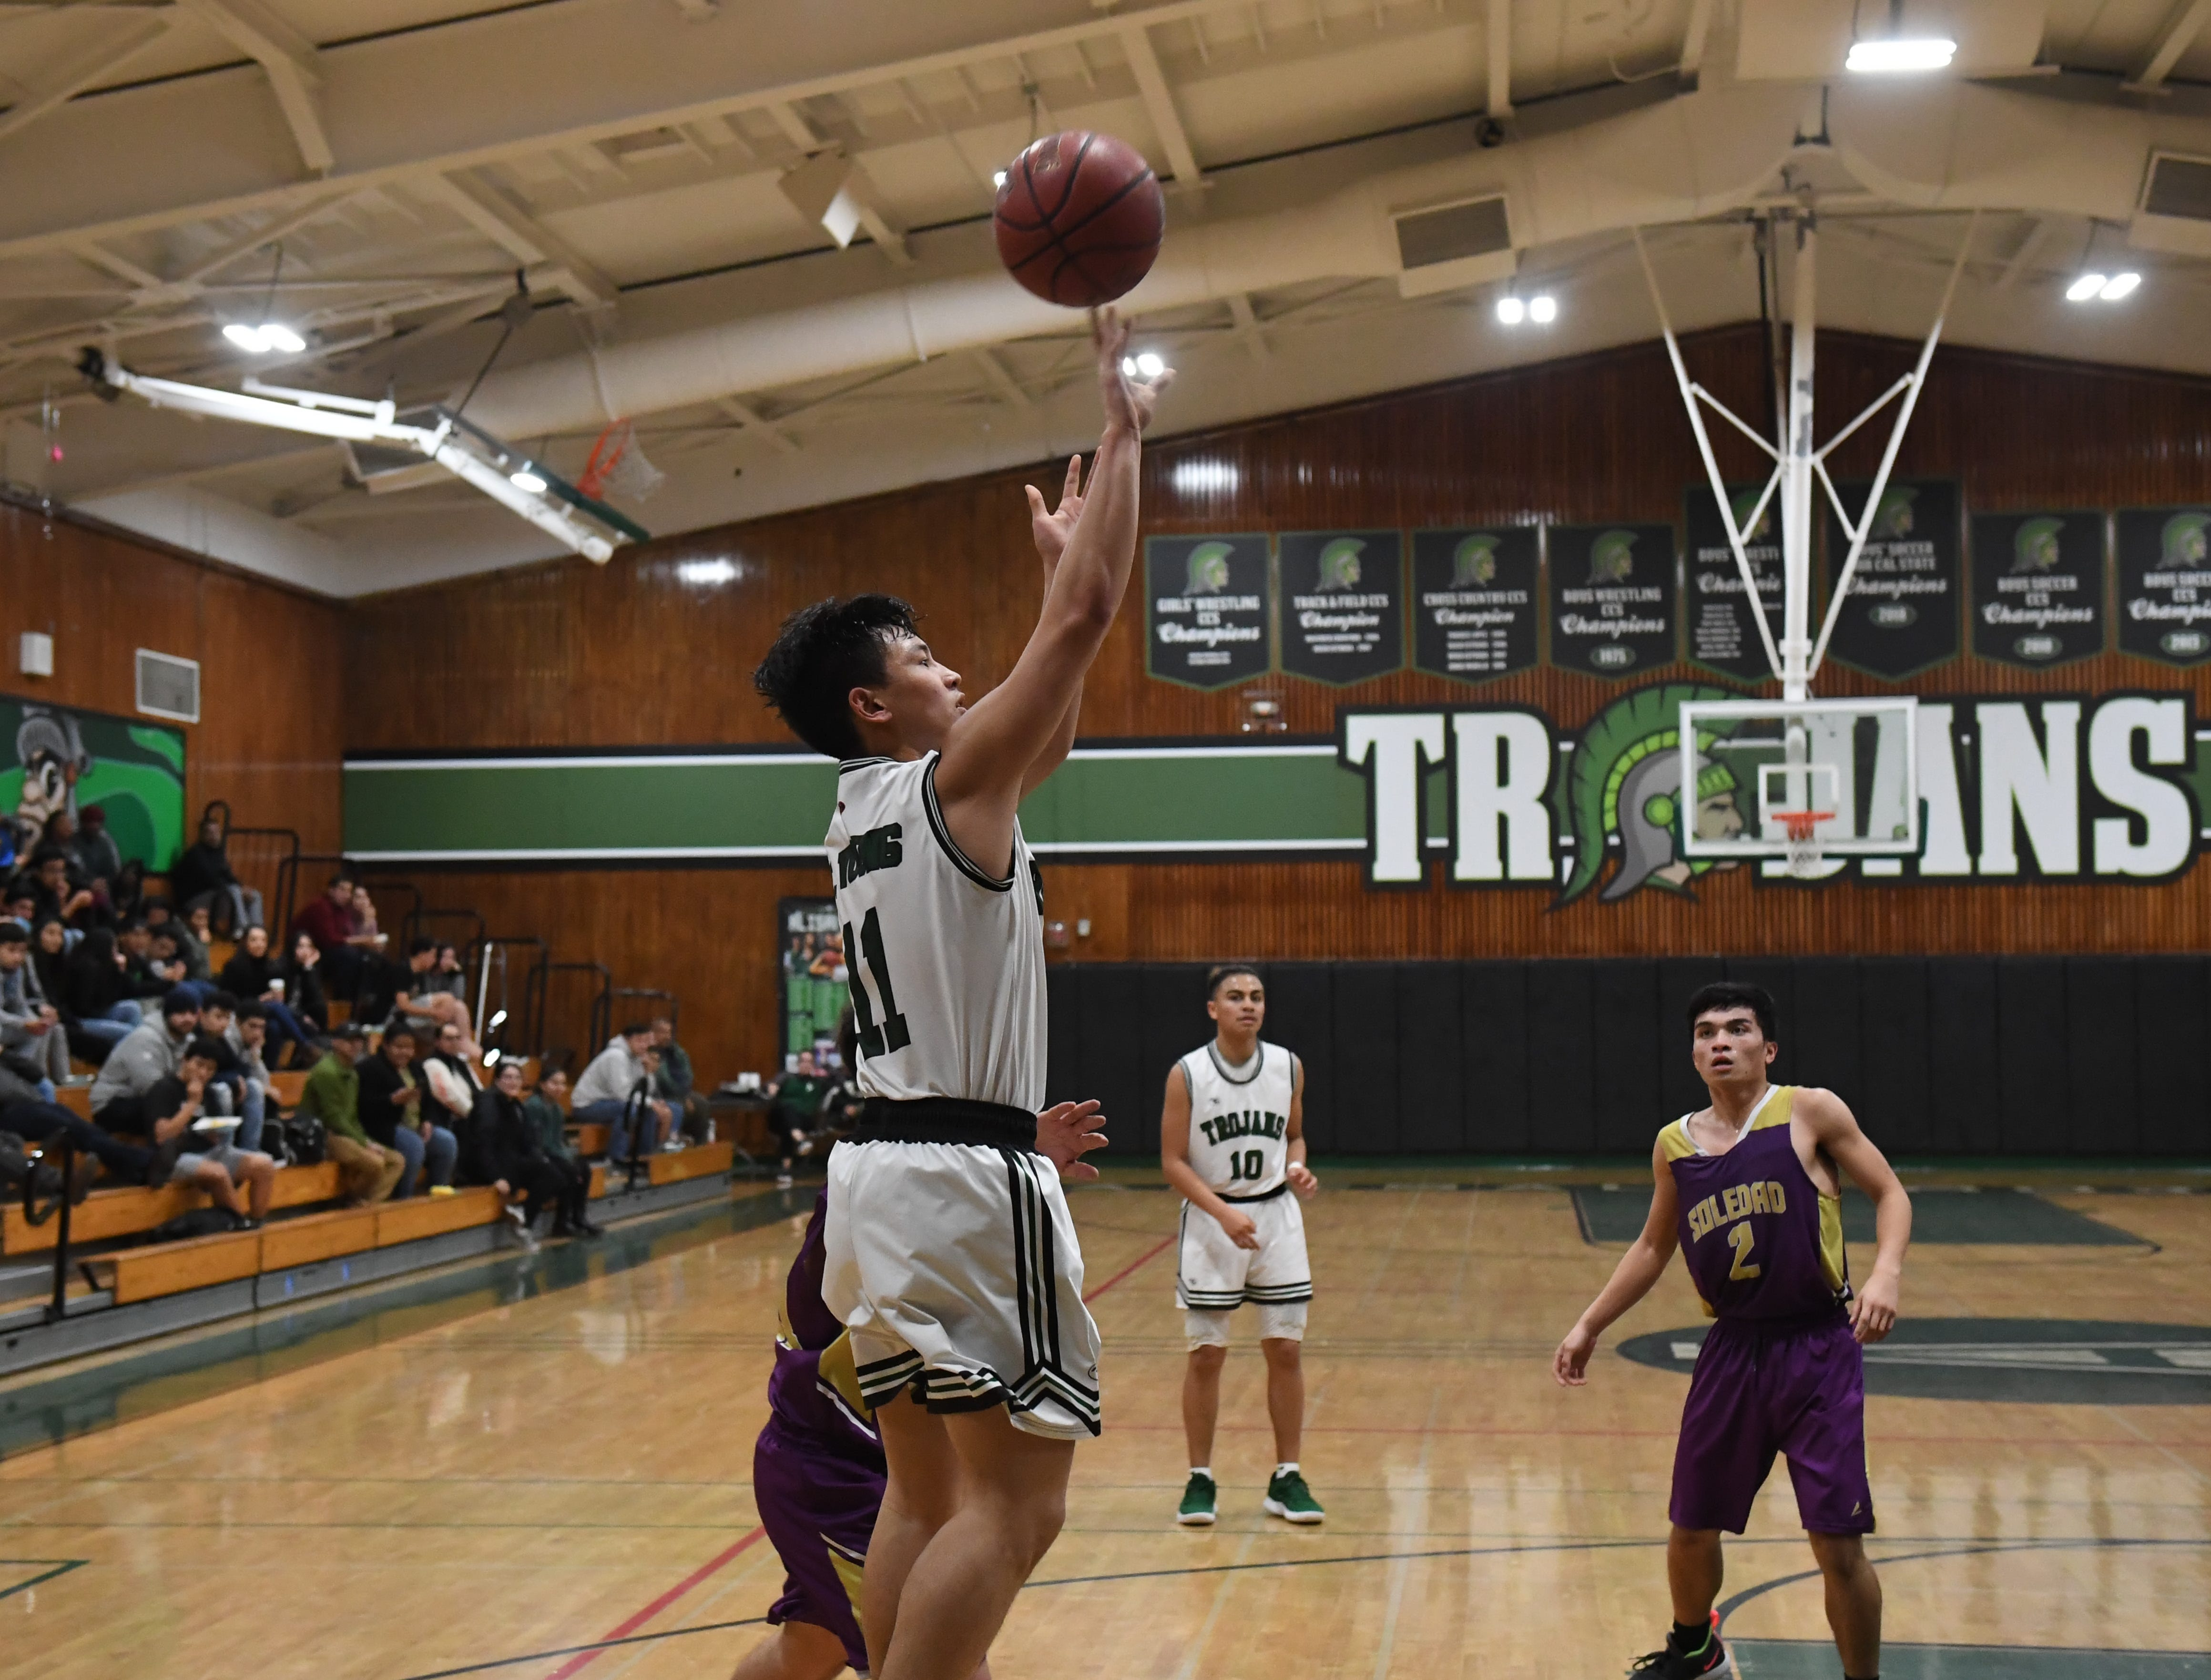 Alisal guard Joshua Vuoung (11) puts up a floater along the baseline.